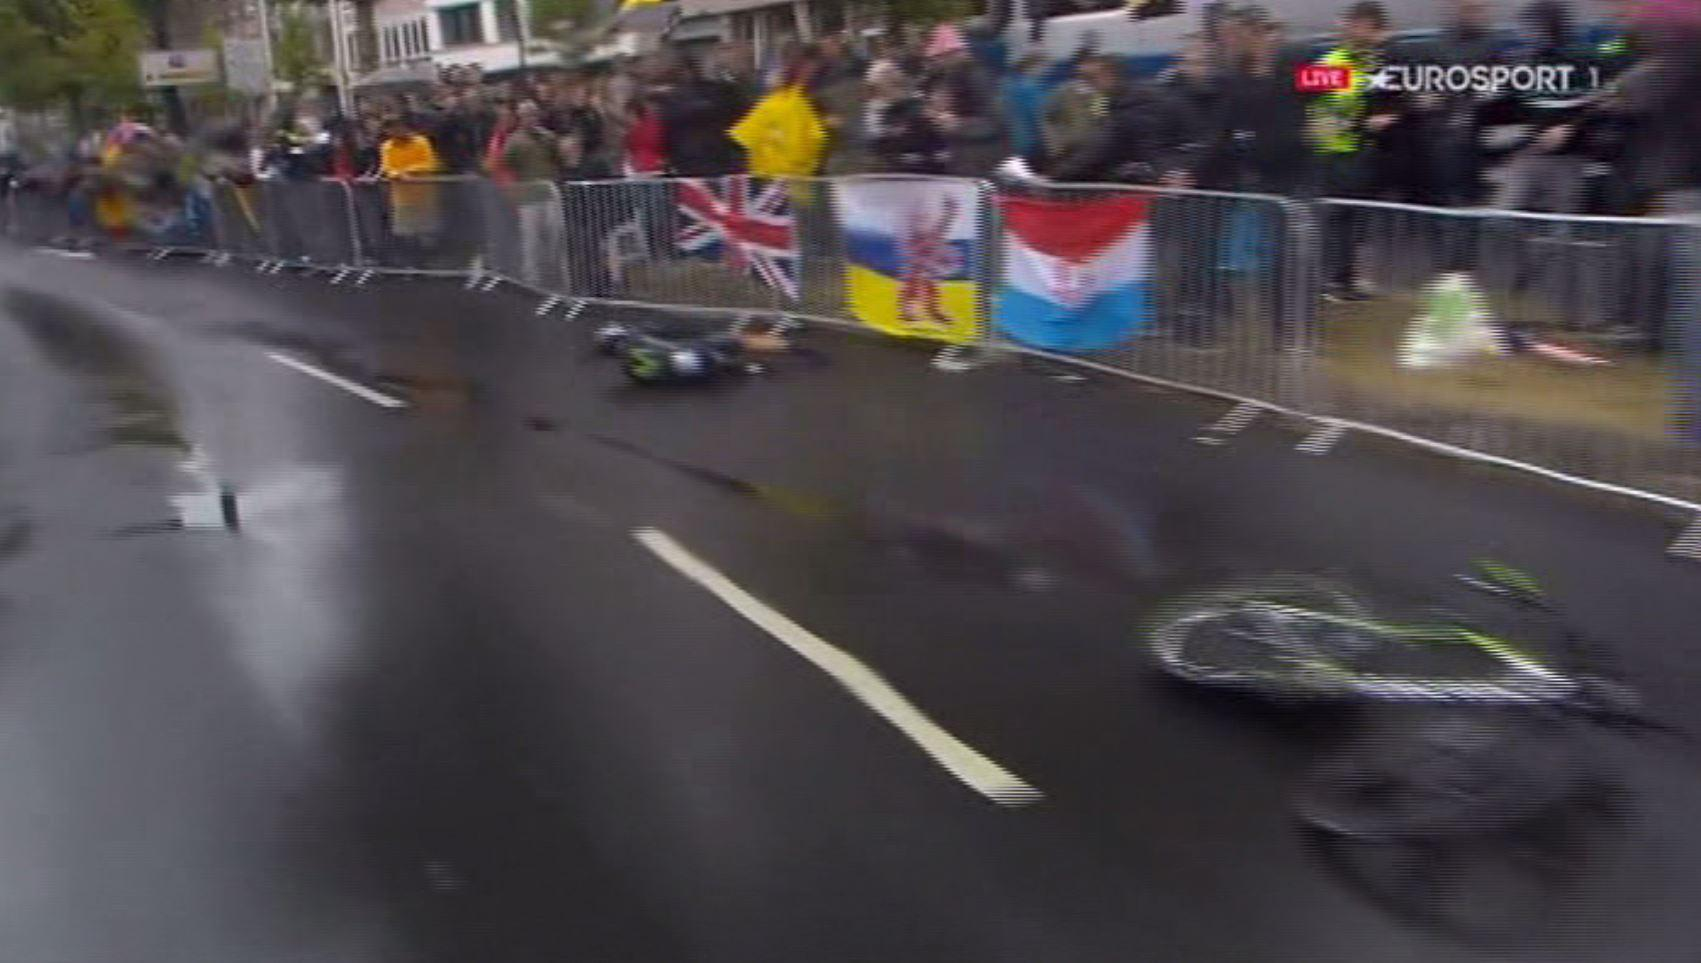 The Movistar rider then slid into a metal barrier